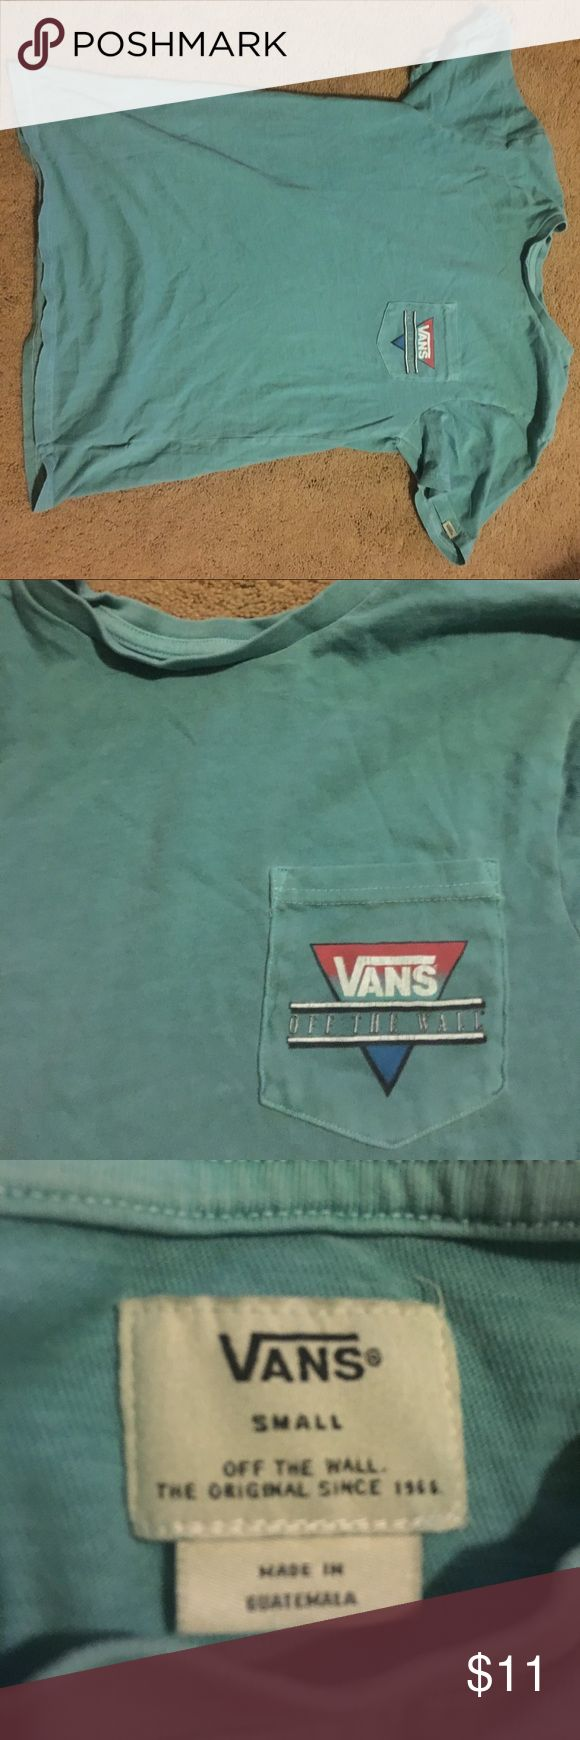 Cyan Vans off the wall tee with pocket adult small This is a cyan, adult small vans t shirt. It has a picket with the vans logo in the front as well as a large logo in the back. It was bought for 22$ and is going for $11 because it was worn once Vans Shirts Tees - Short Sleeve